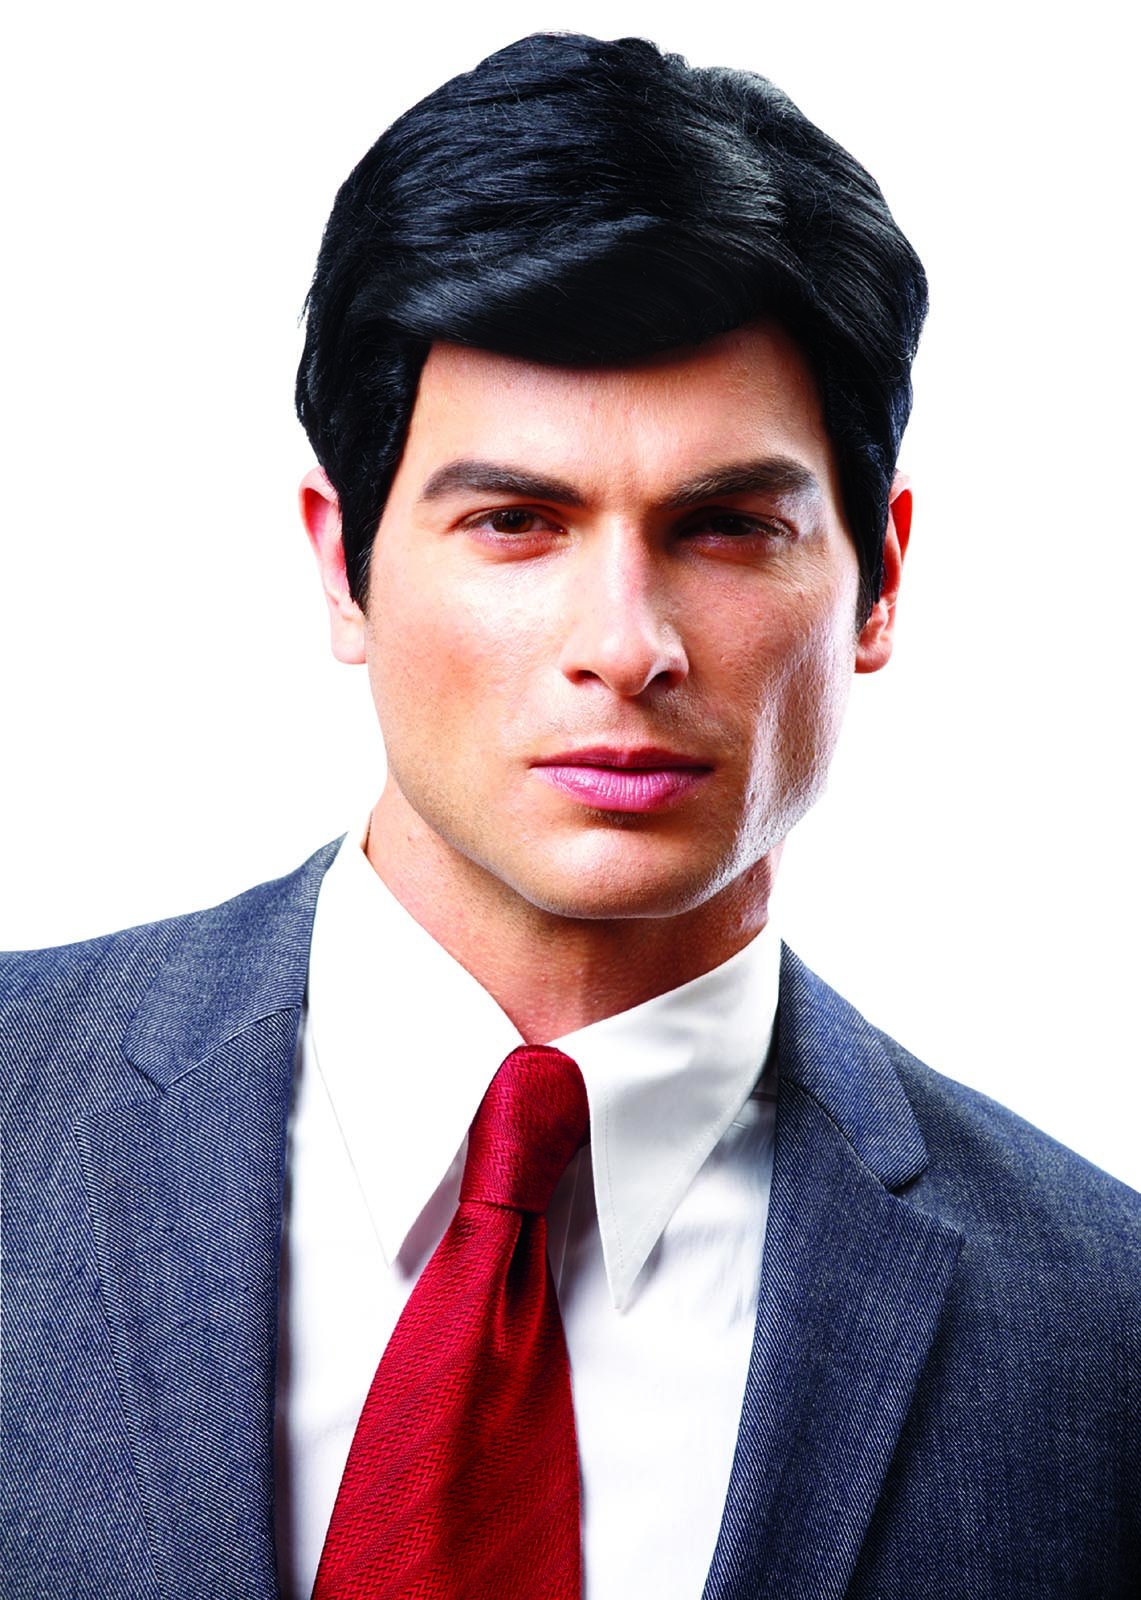 Costume Culture Men's Real Man Wig, Black, One Size